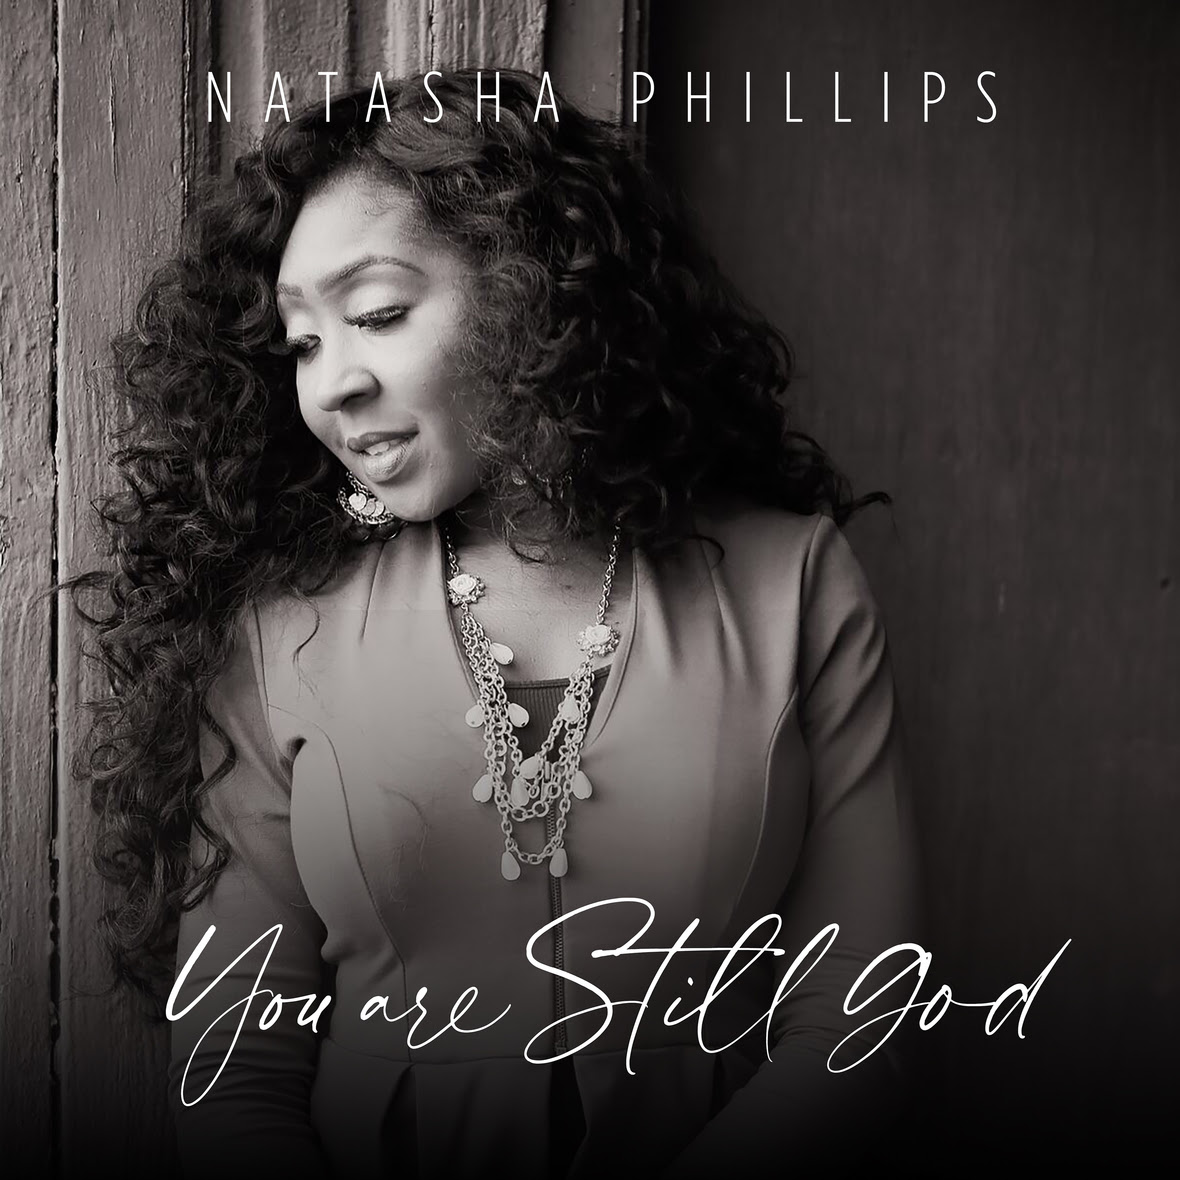 Natasha Phillips - You Are Still God - Cover